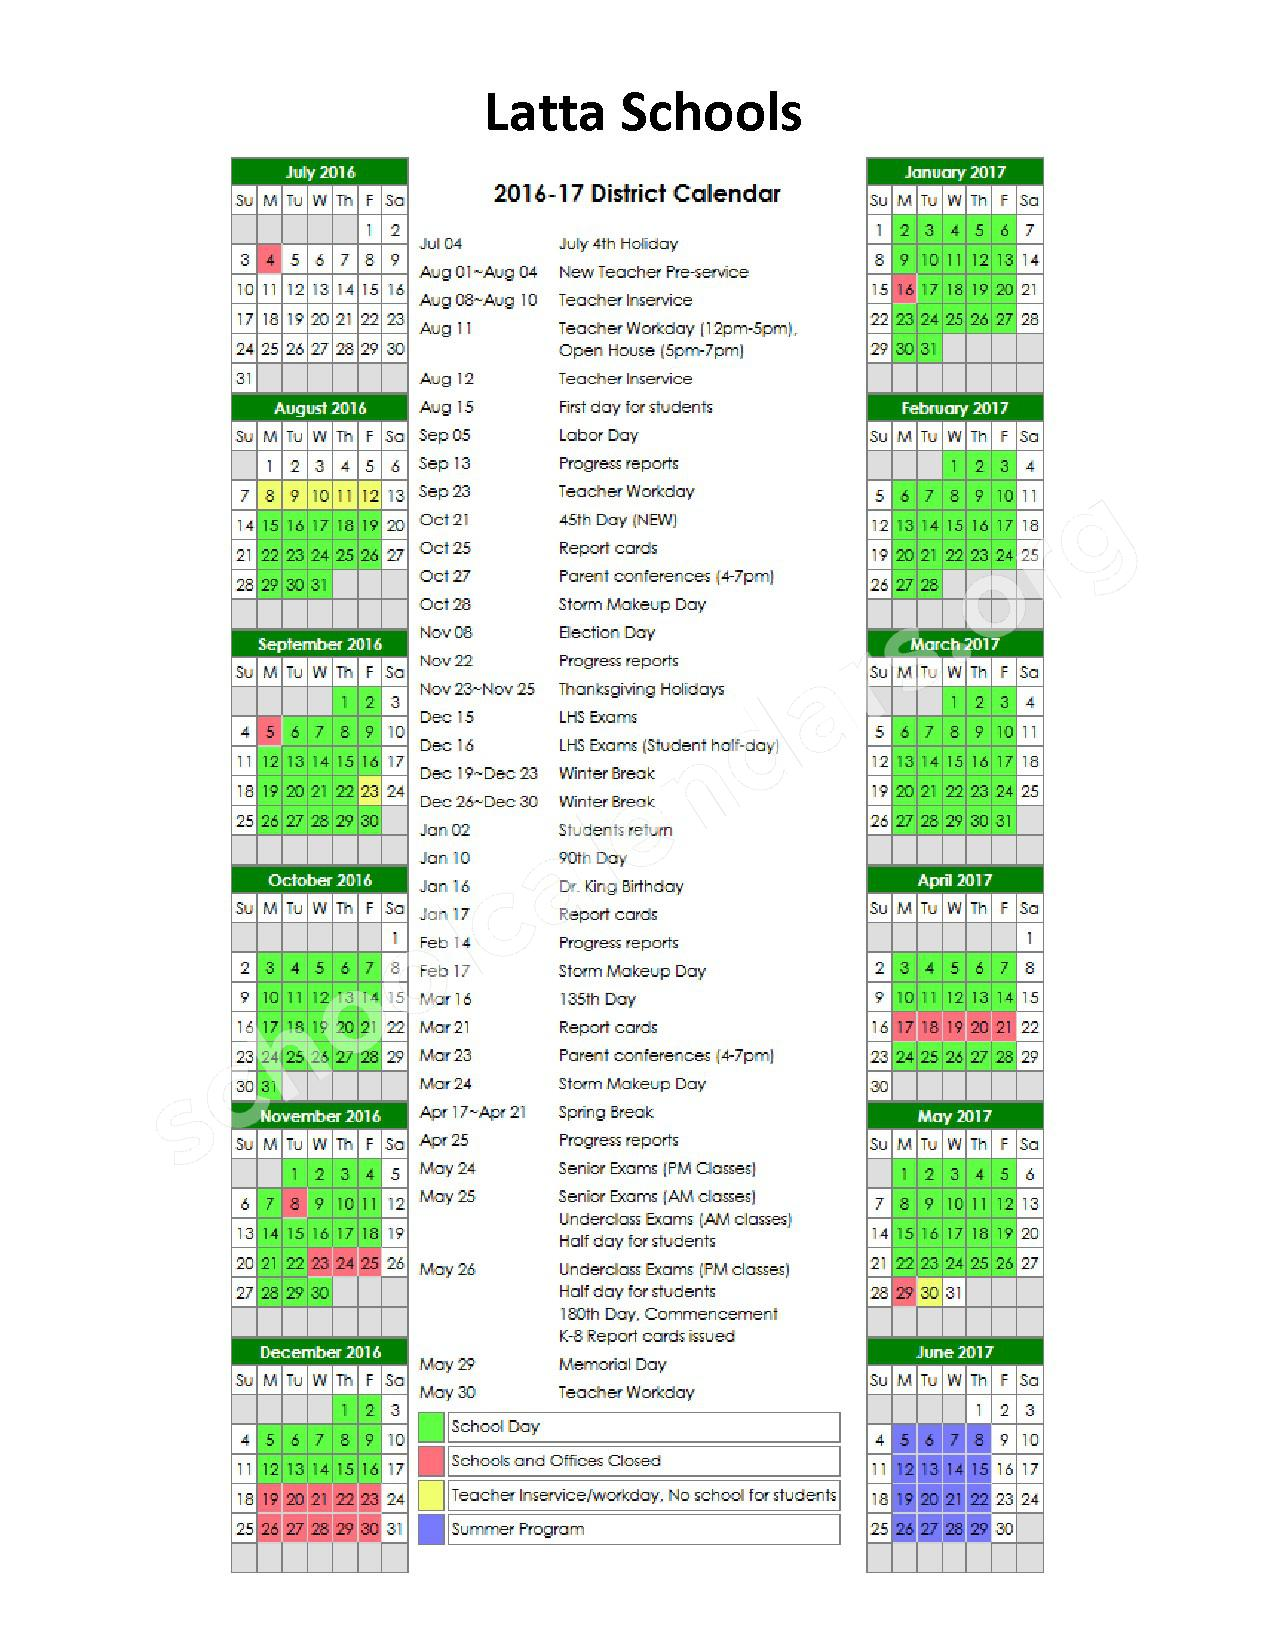 2016 - 2017 School Calendar – Latta Schools - Dillon School District 3 – page 1